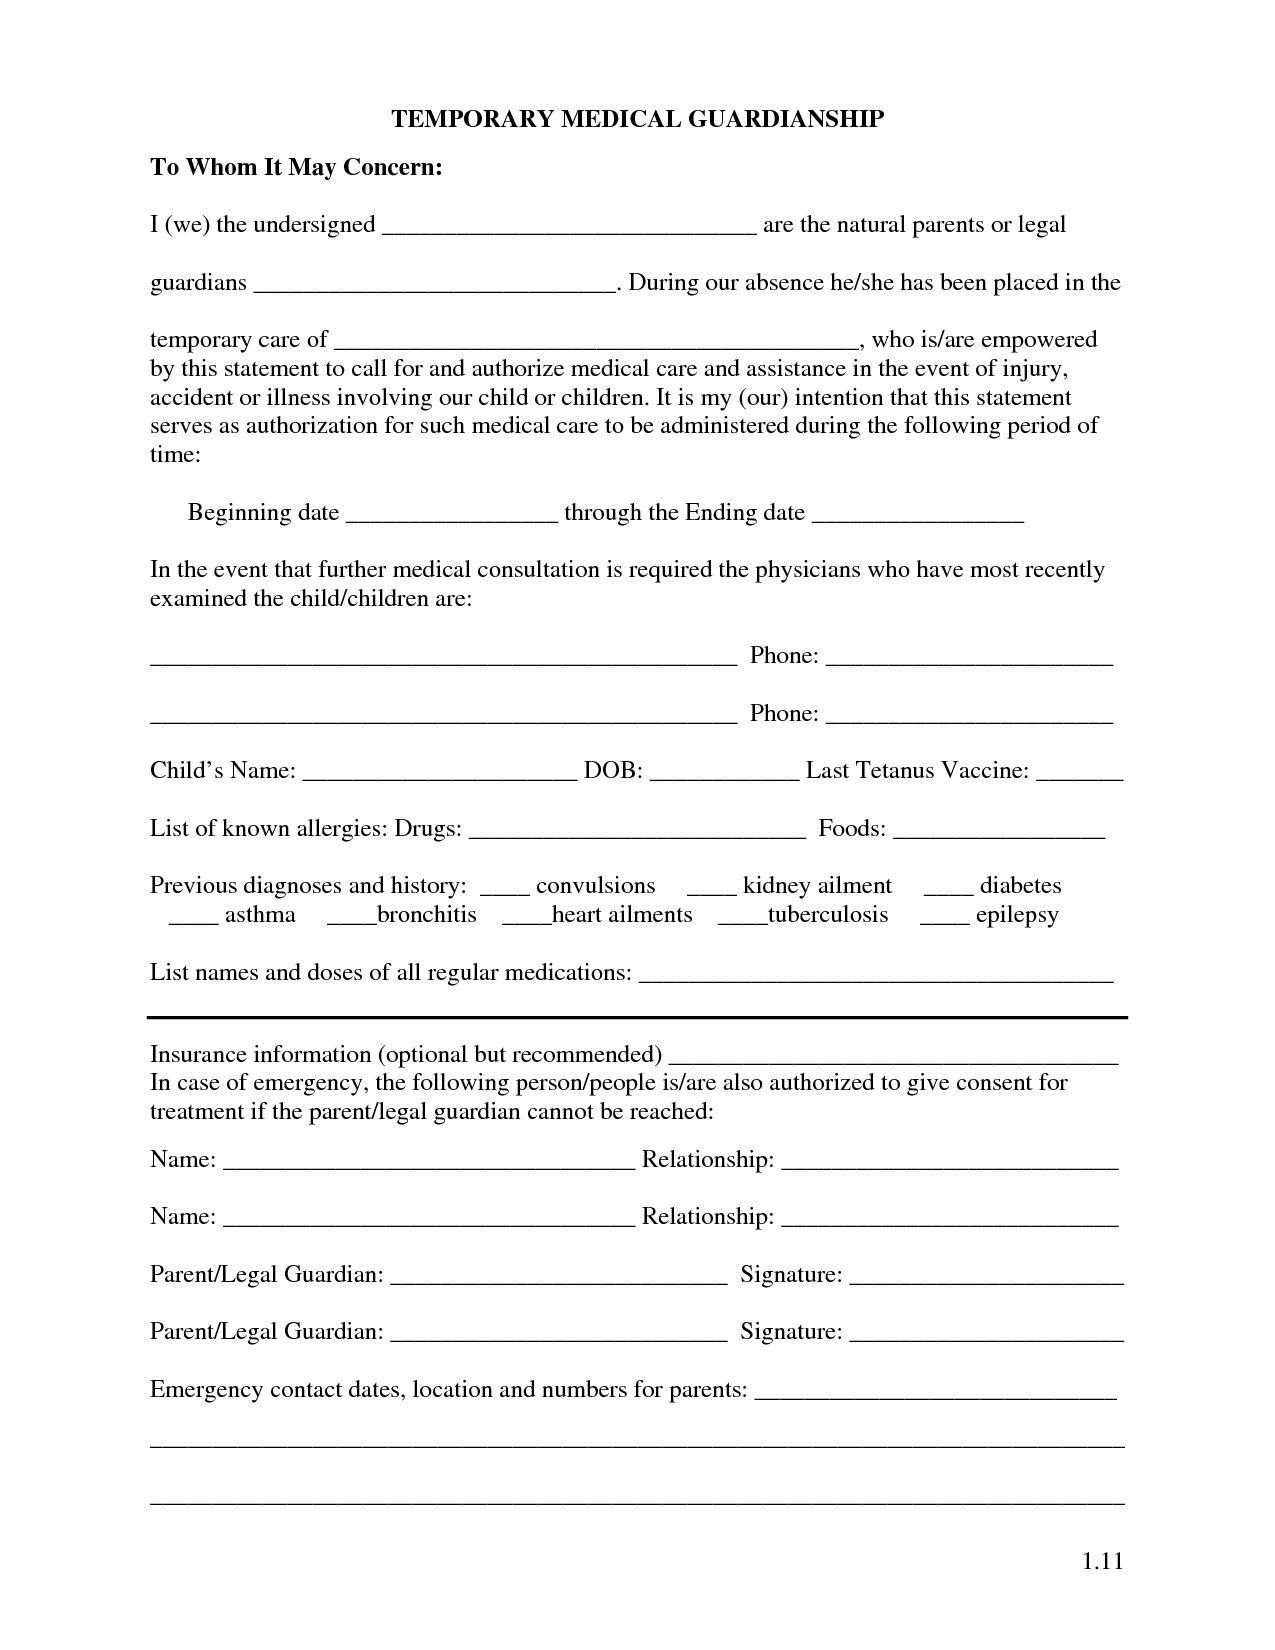 Free Printable Temporary Guardianship Forms   Forms   Child Custody - Free Printable Child Guardianship Forms